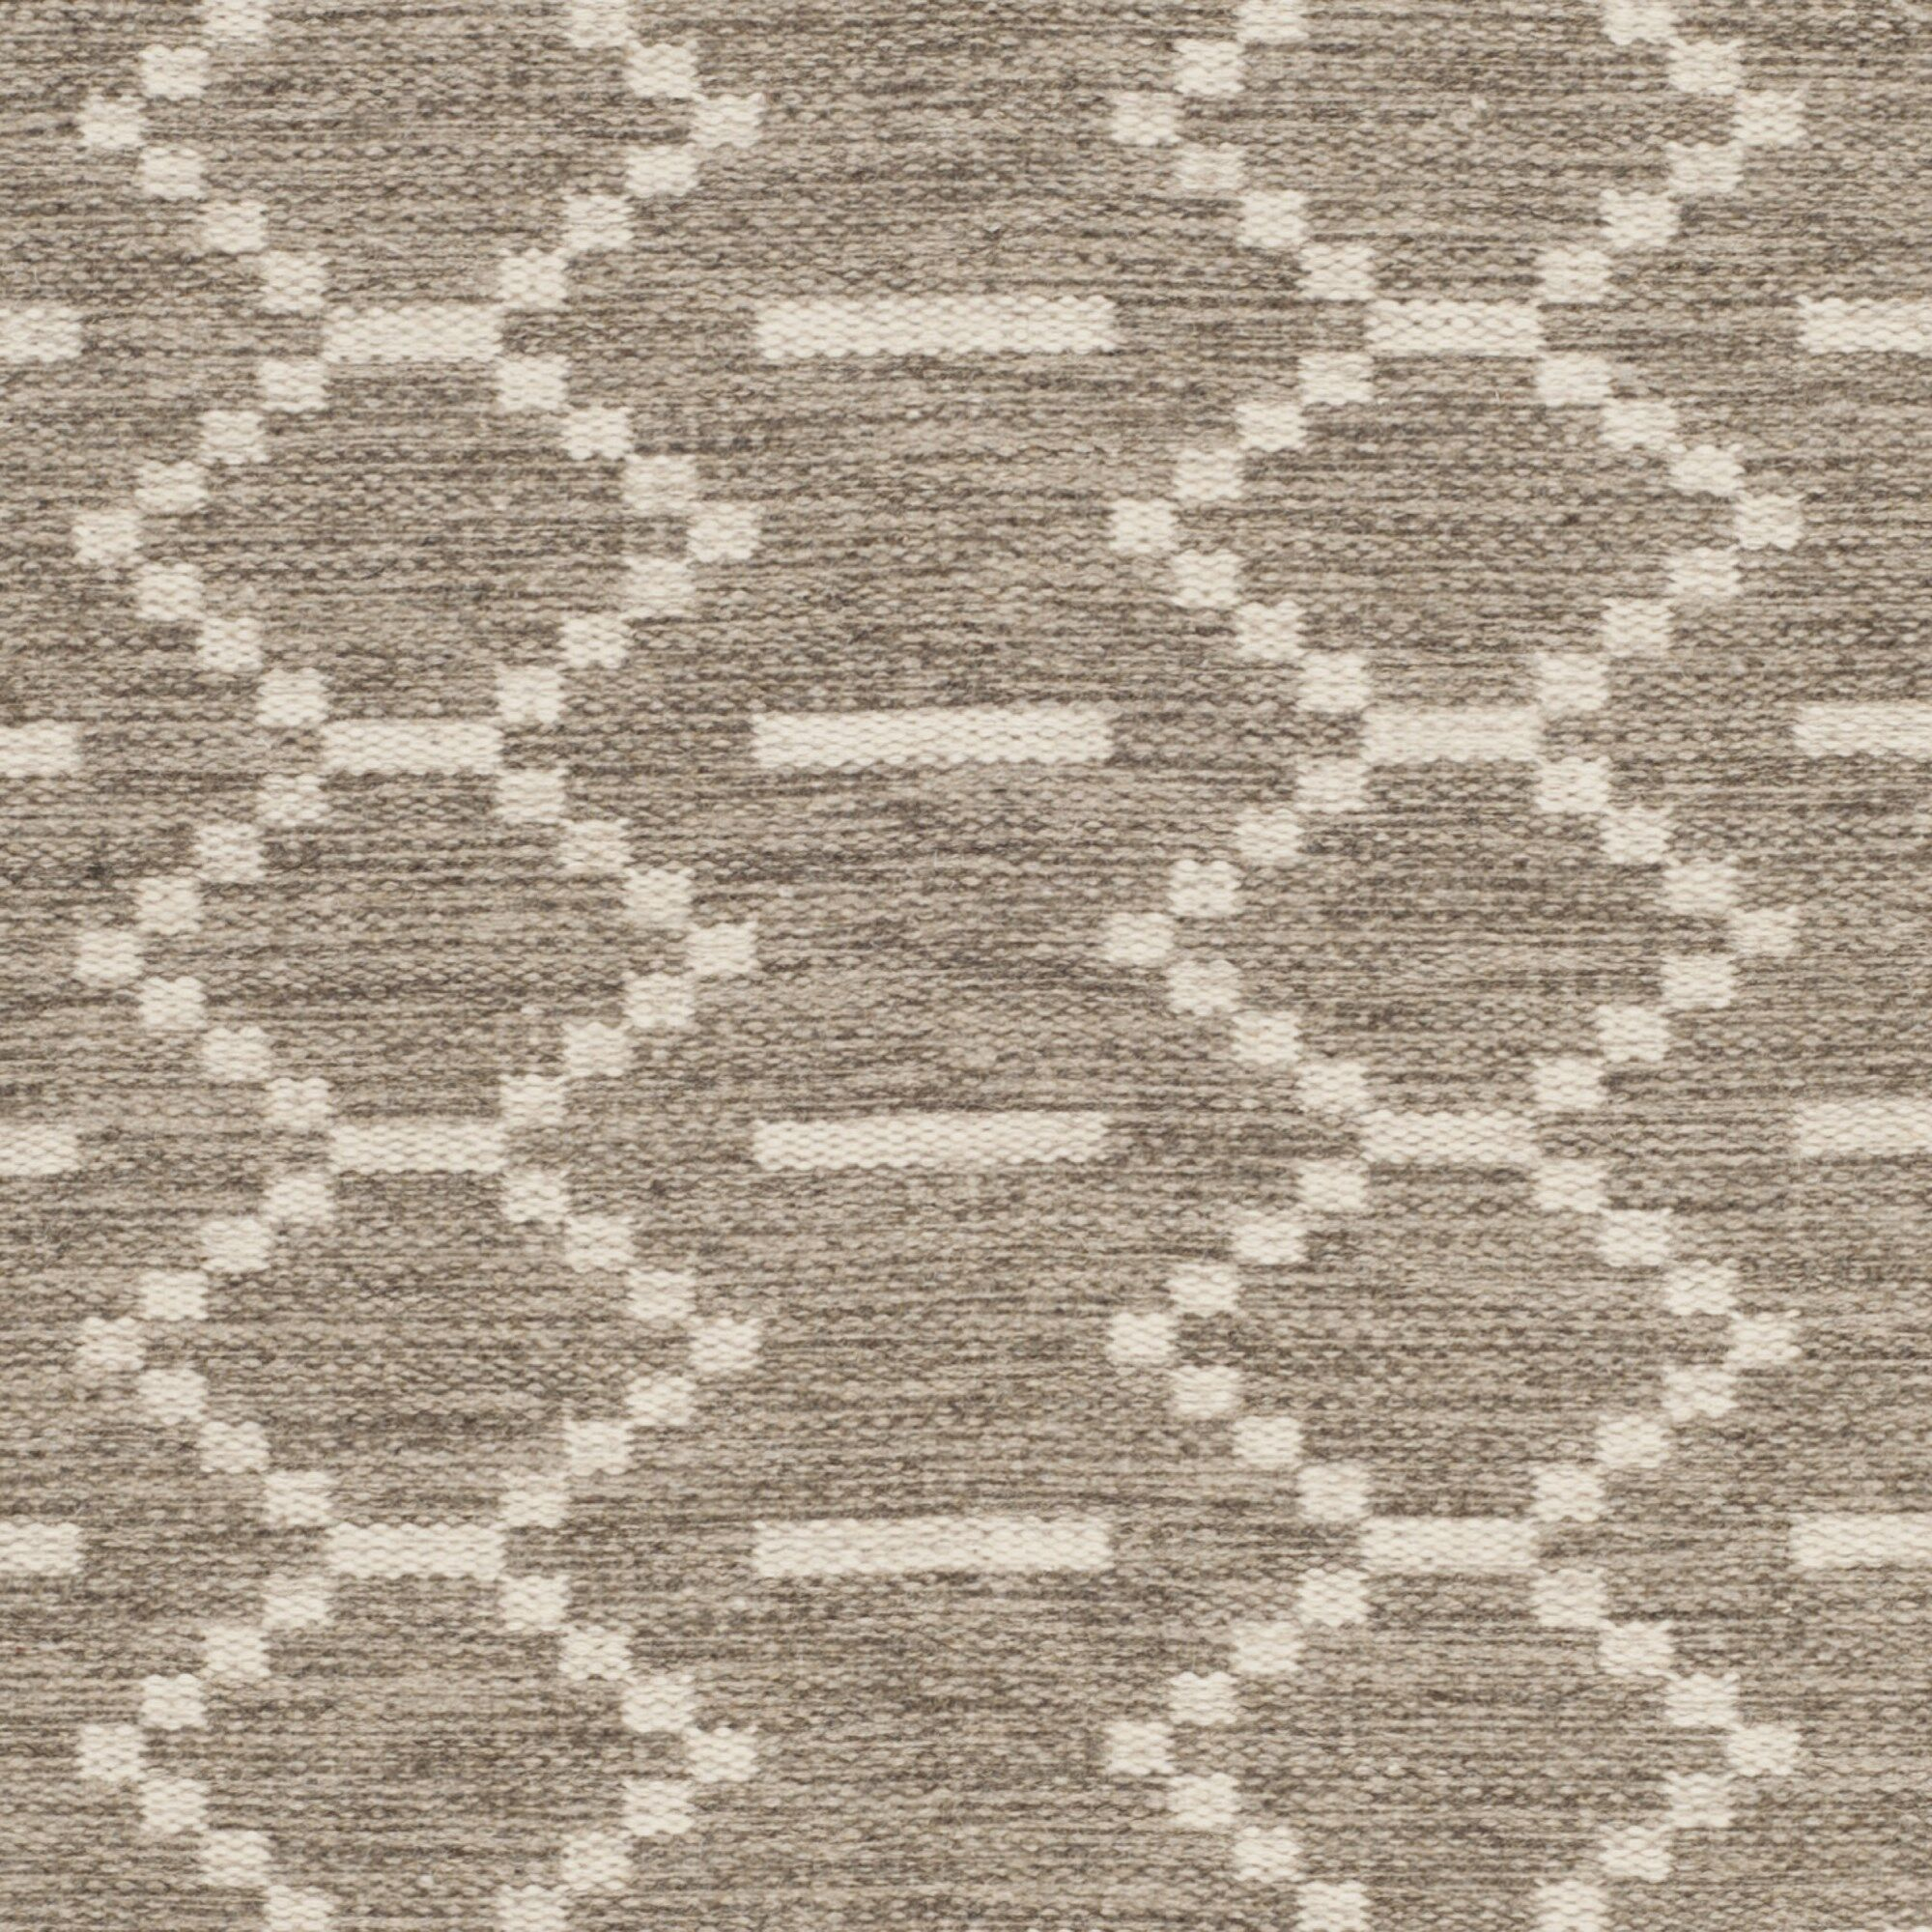 Bennett Hand-Woven Wool Gray Area Rug Rug Size: Rectangle 8' x 10'